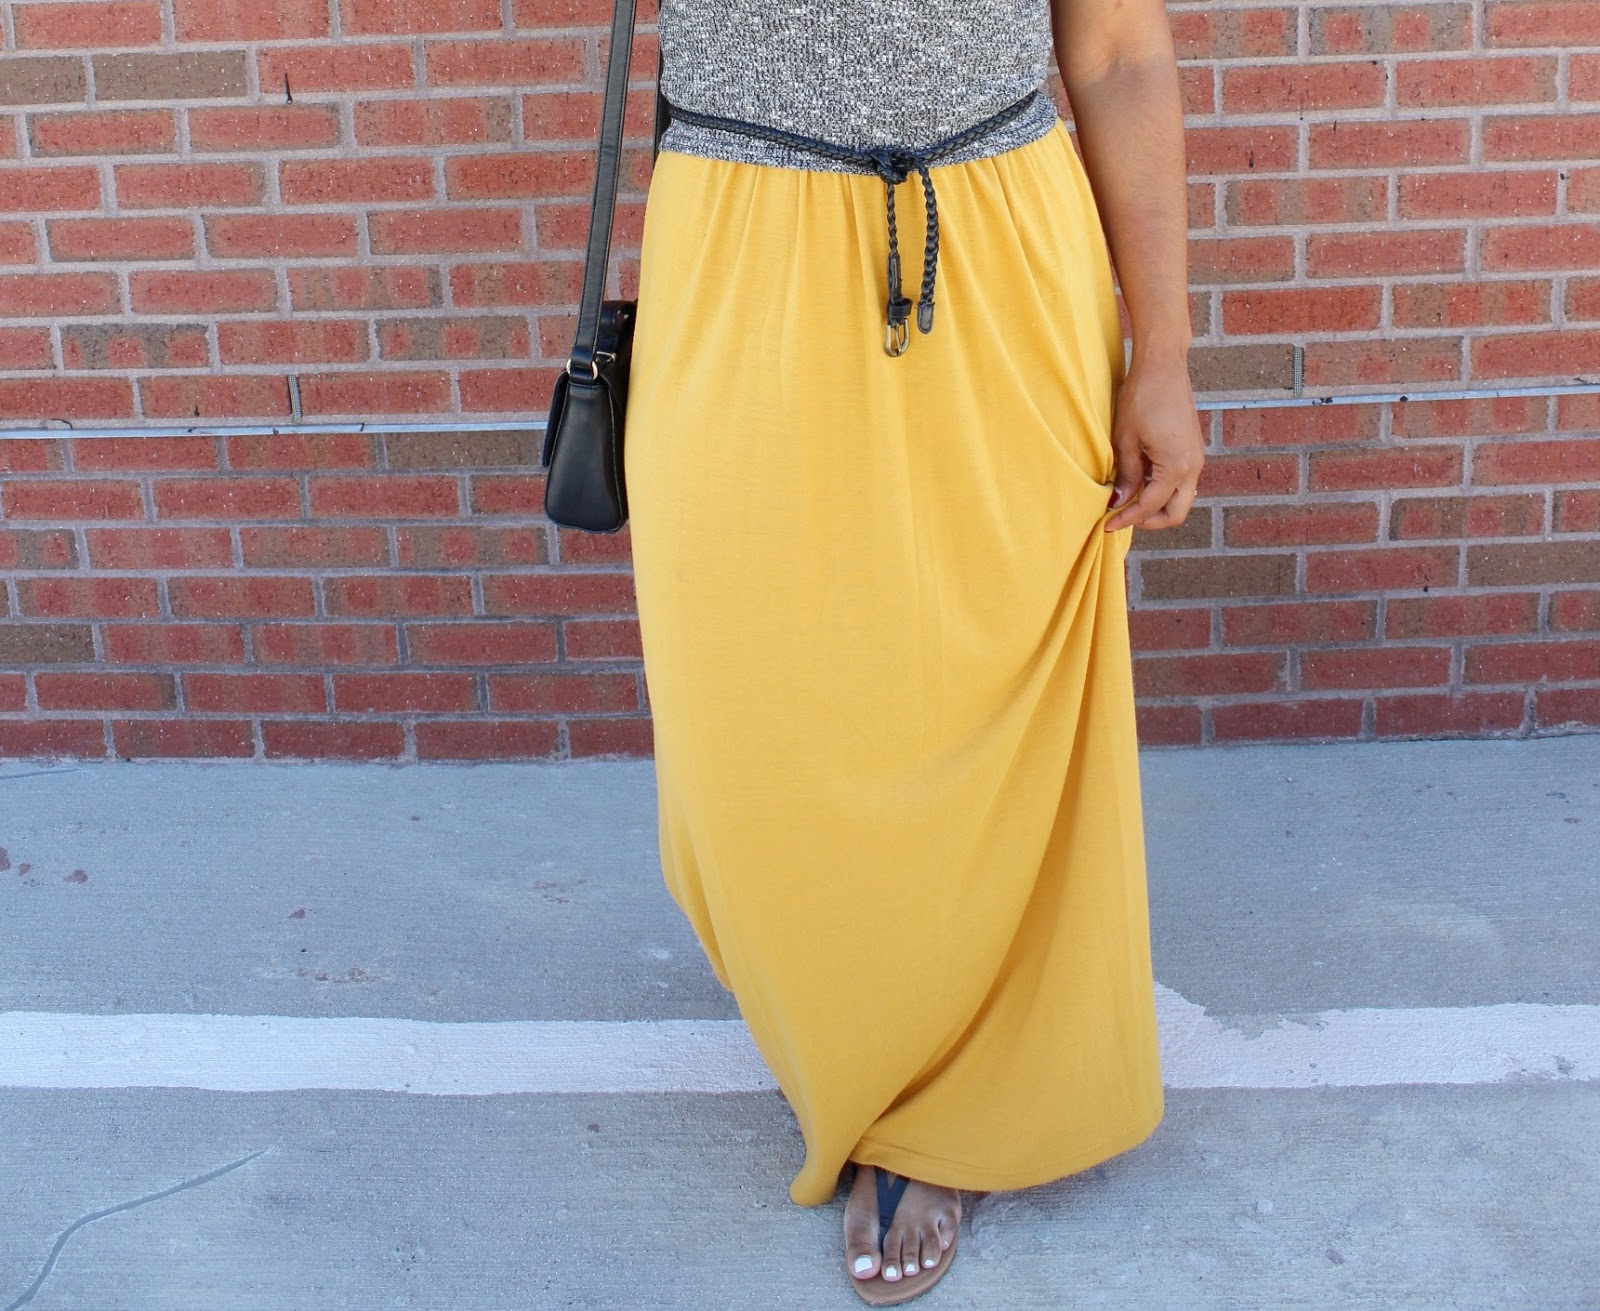 maxi dress, summer looks, maxi skirt, blogger, fashion